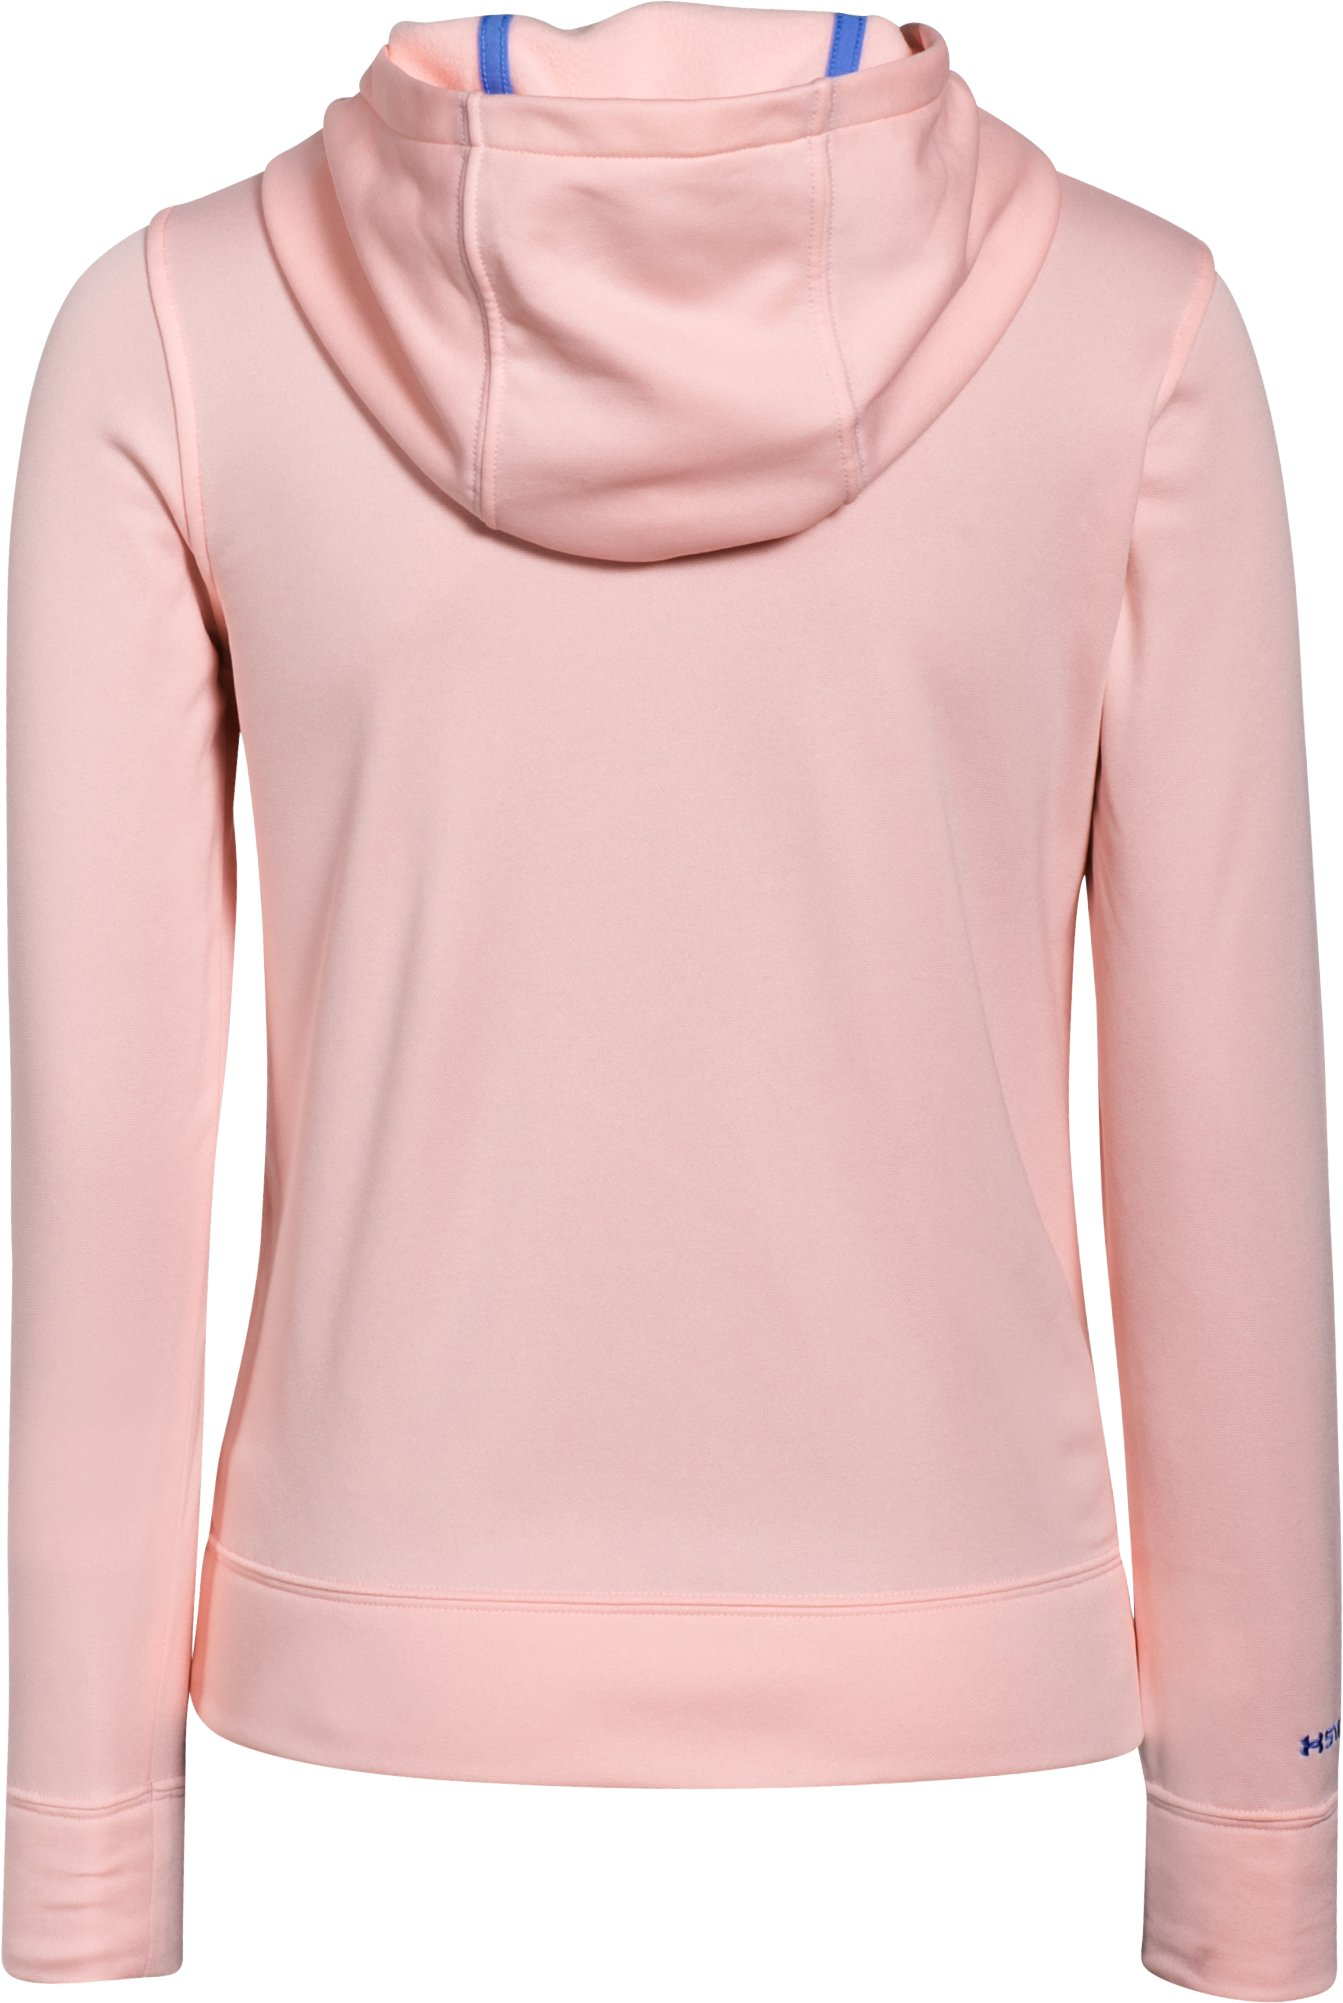 Girls' UA Fish Hook Hoodie, BALLET PINK, undefined